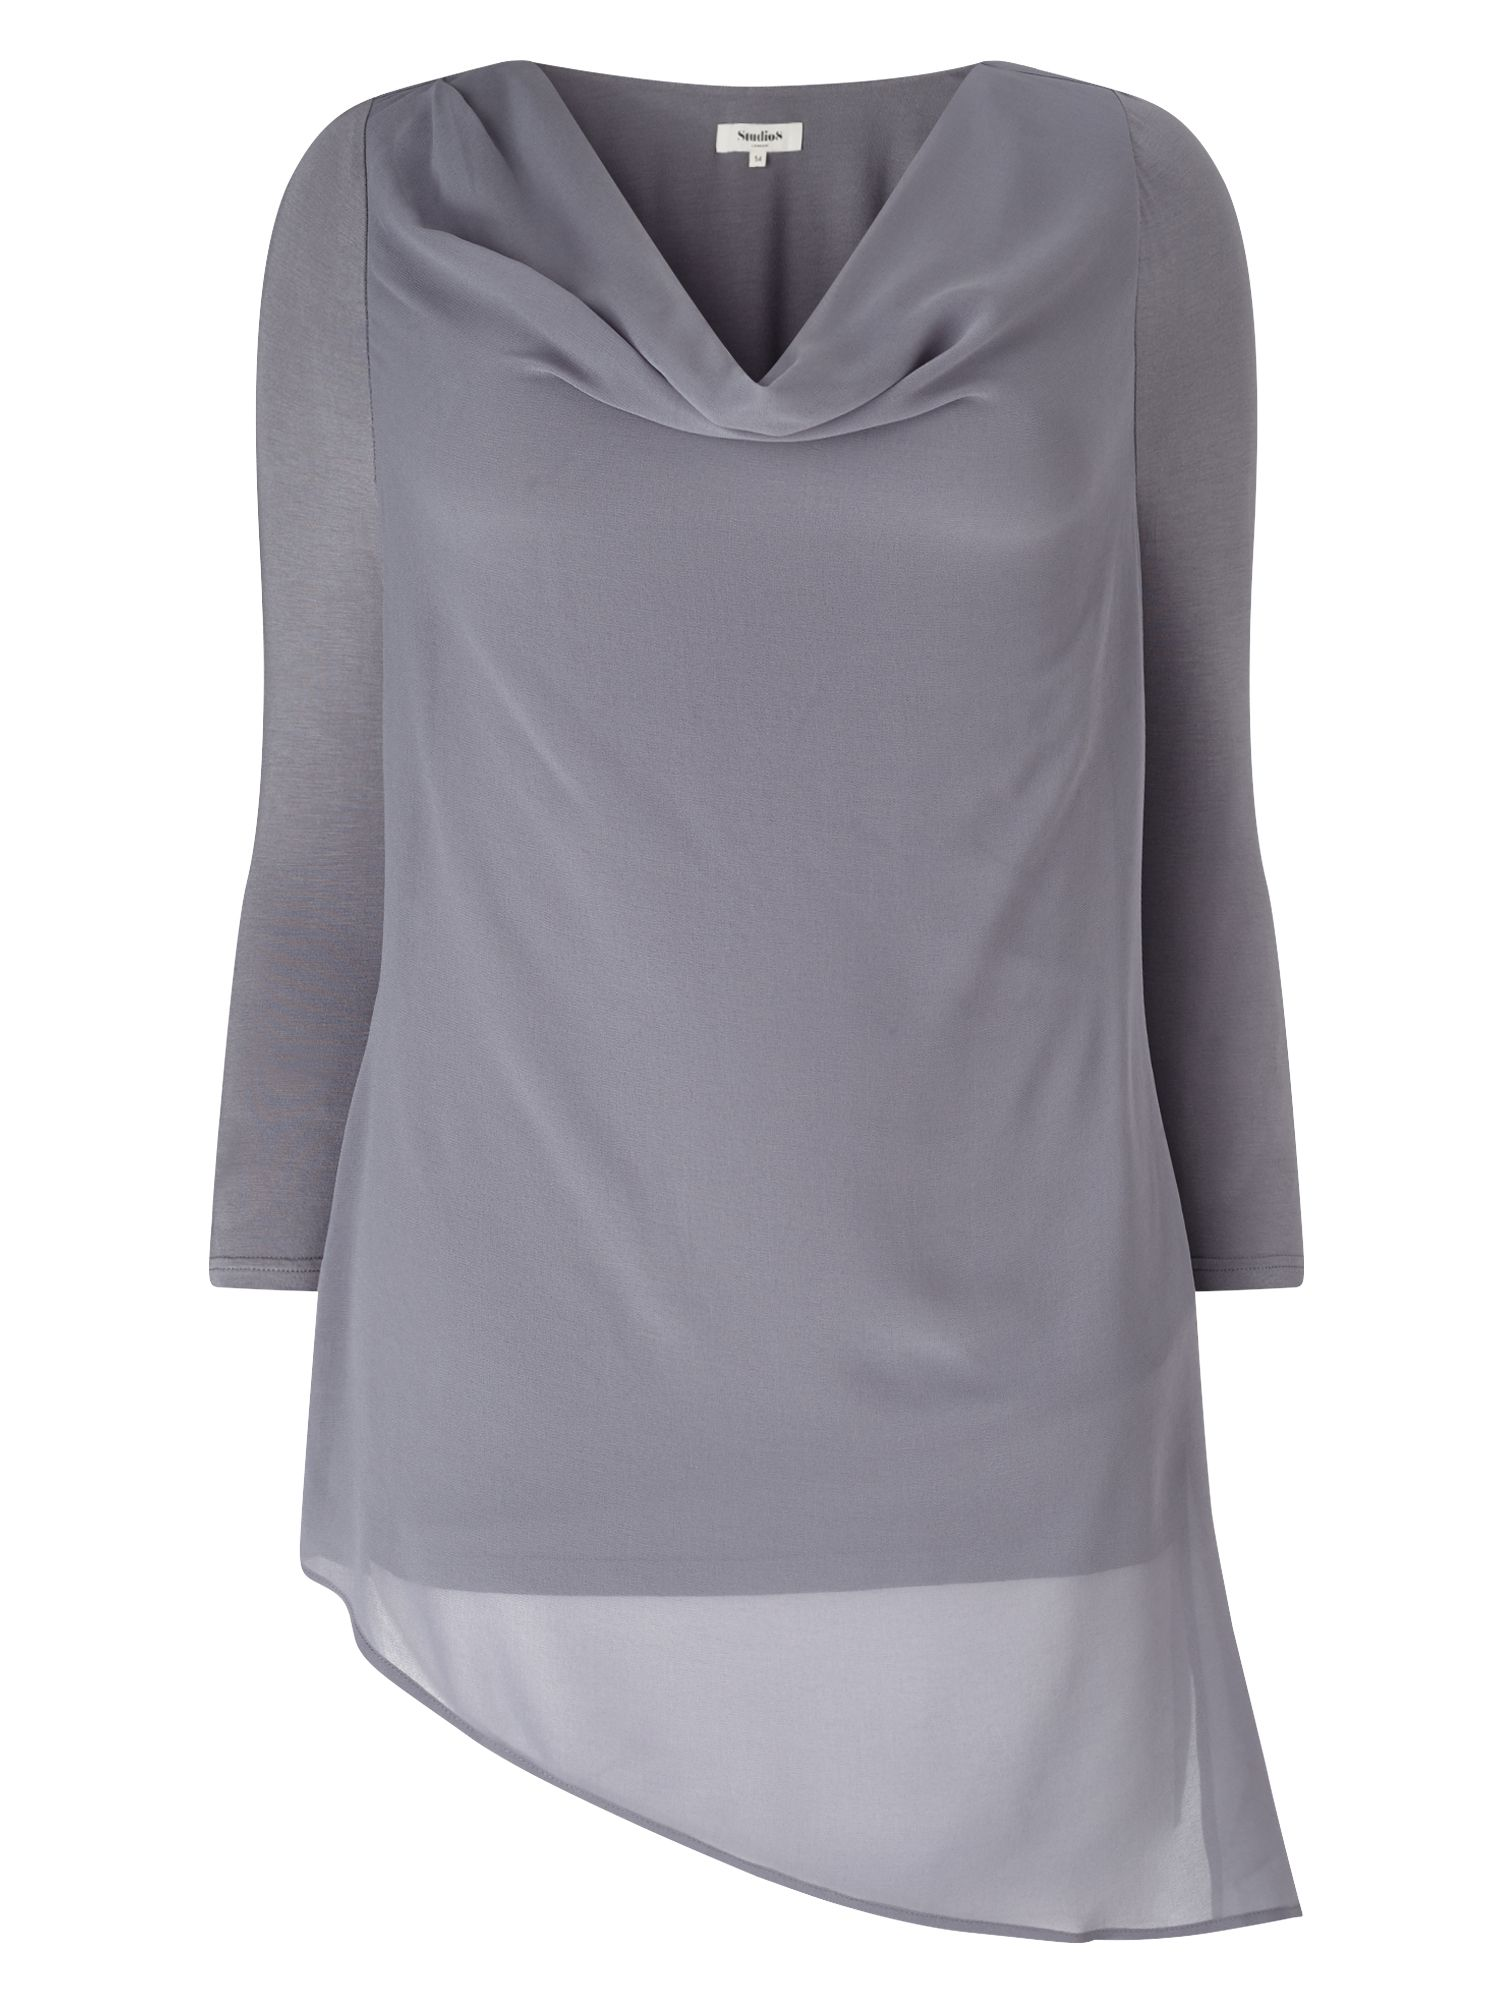 Studio 8 Nisha Top, Grey